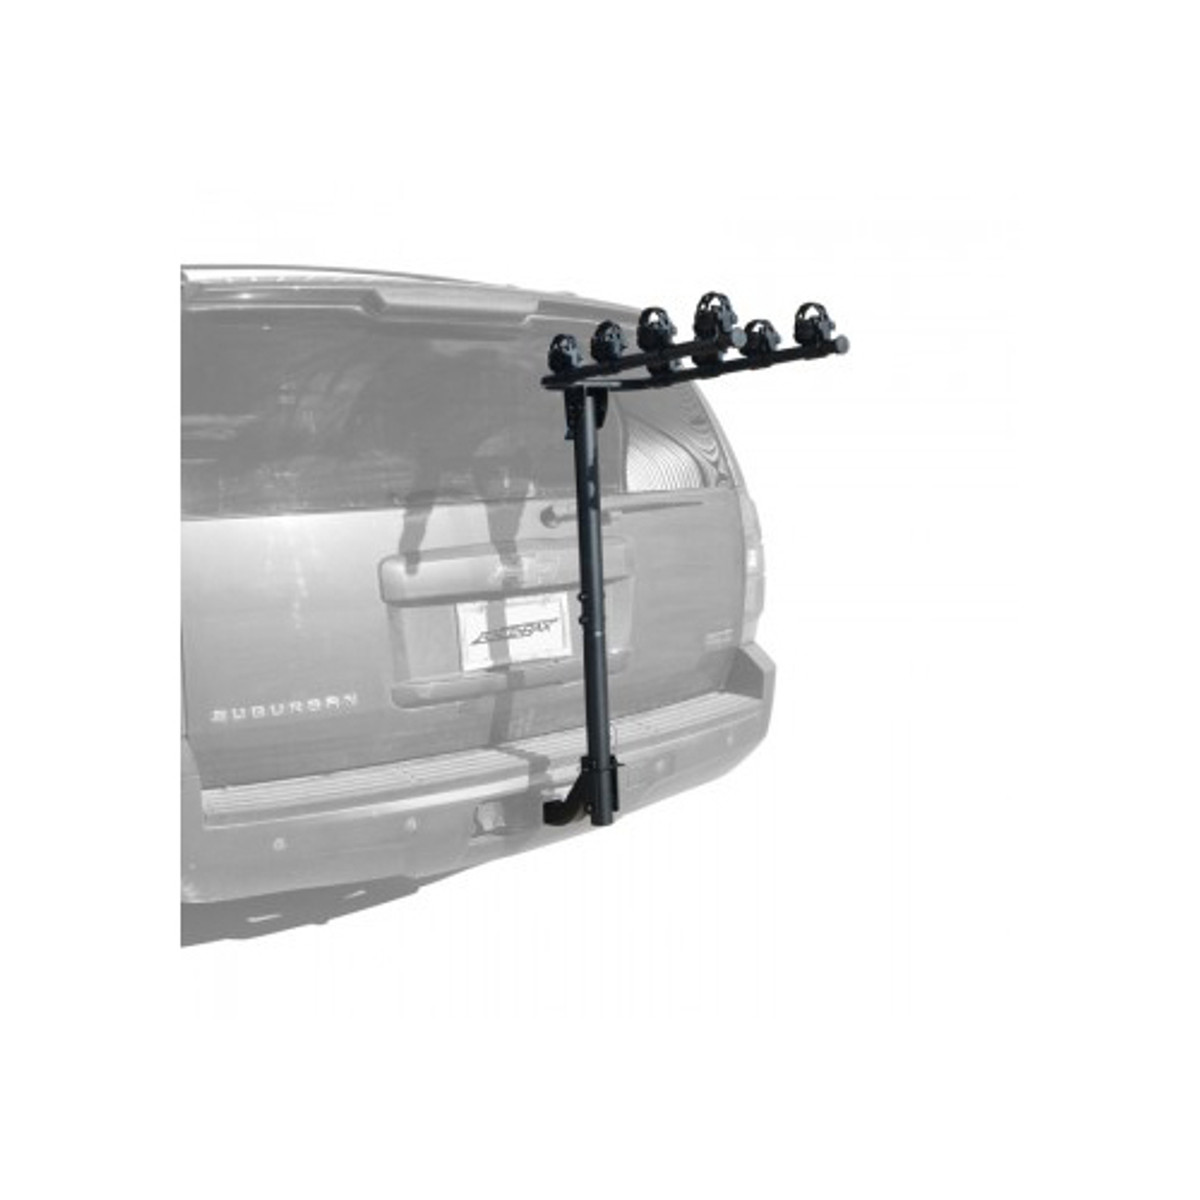 force rax s 2 deluxe 4 bike hitch car rack for 2 inch hitch